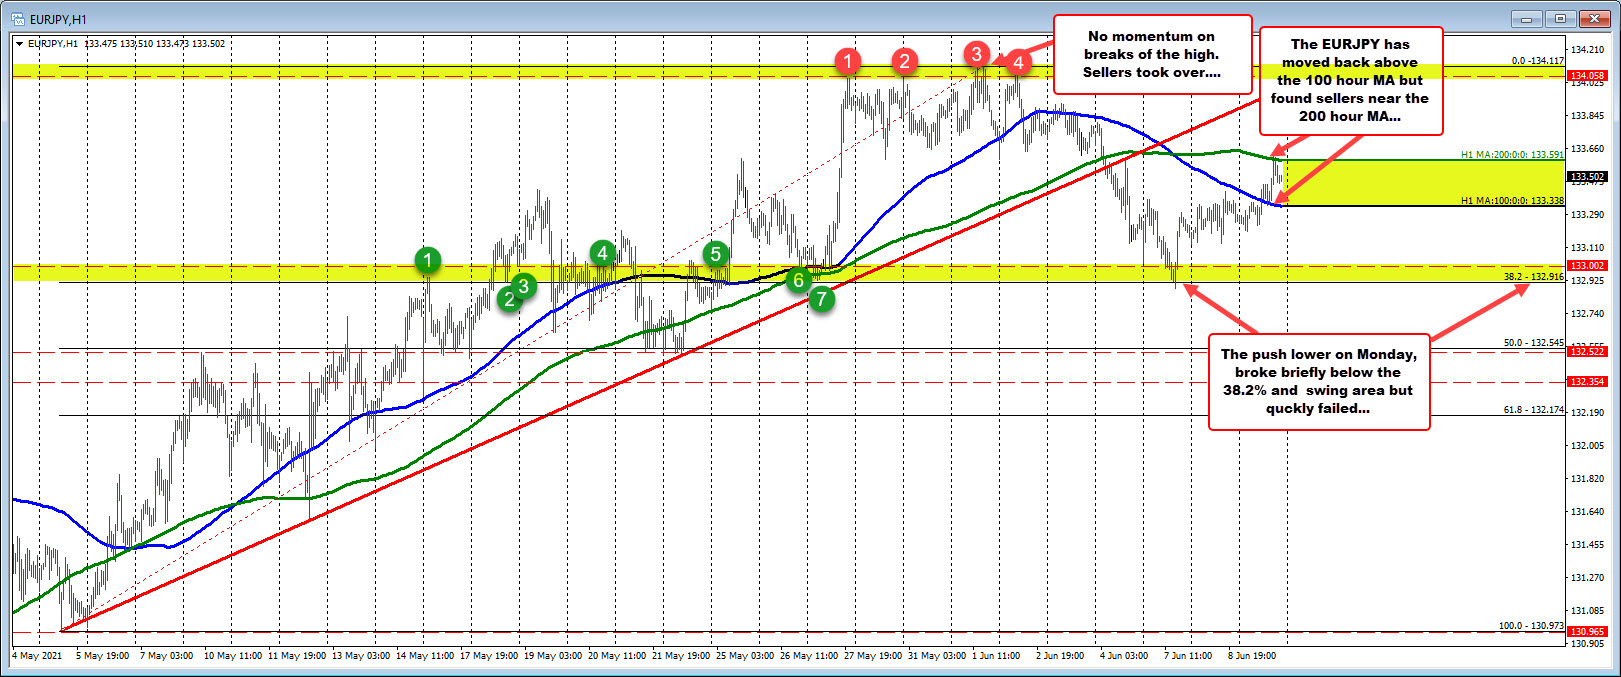 Below 200 hour MA. Above the 100 hour MA. Waits for the next shove